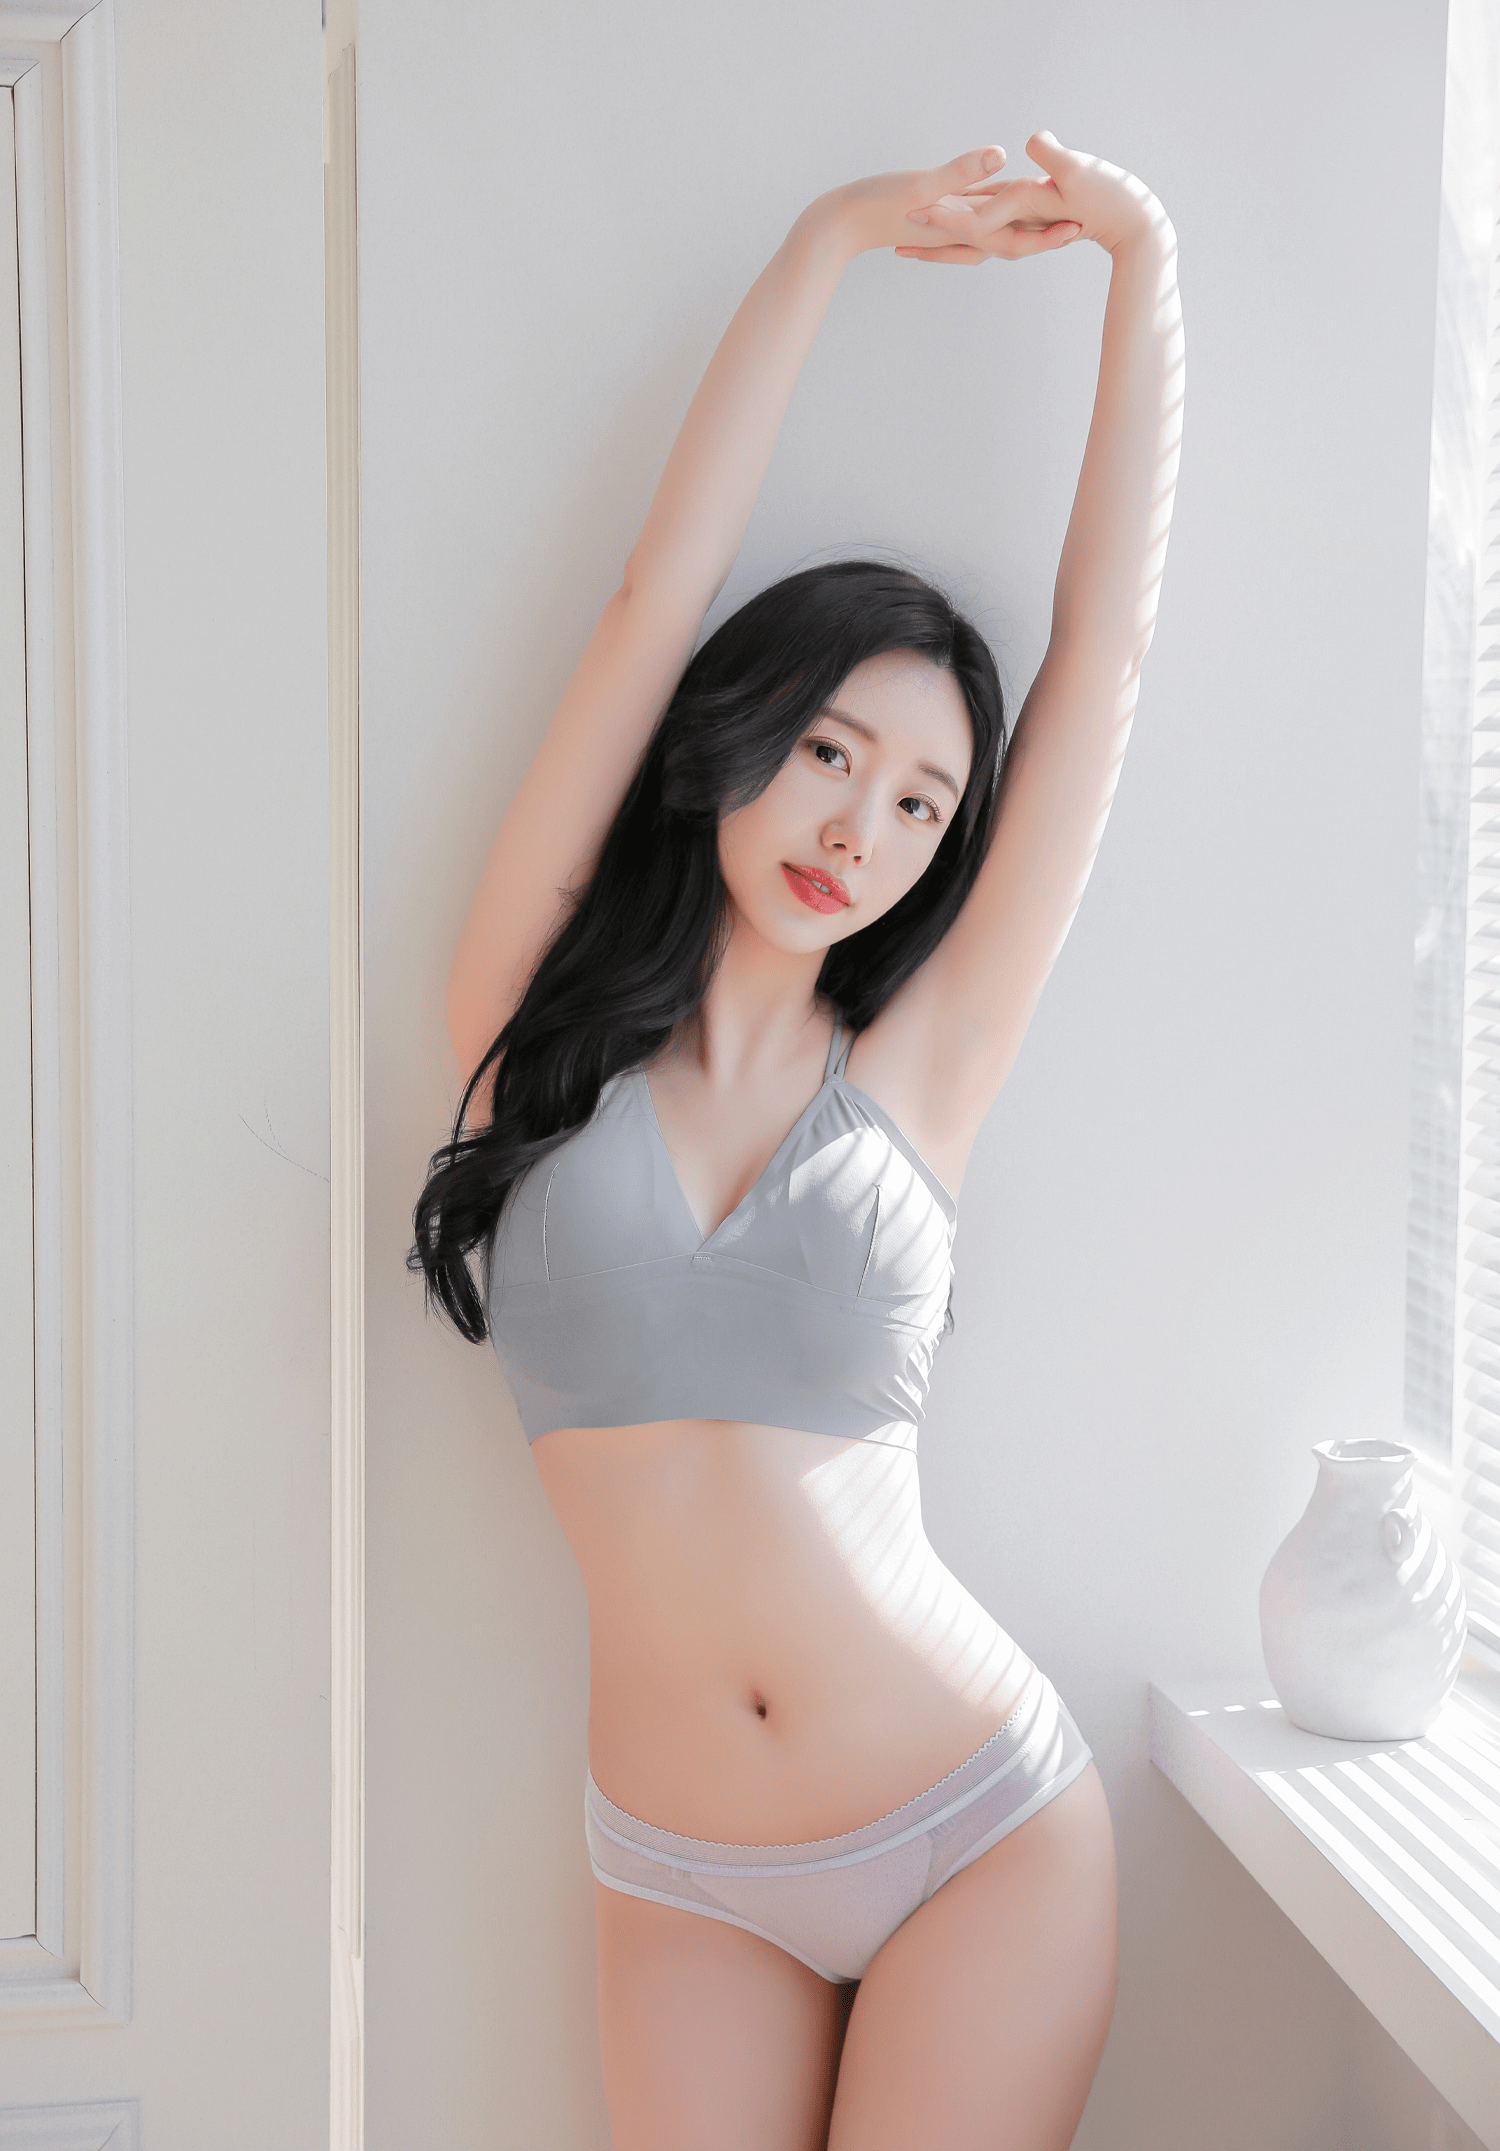 Harin - NUDMALL - April 2021 Lingerie Photoshoot (full set in comments)